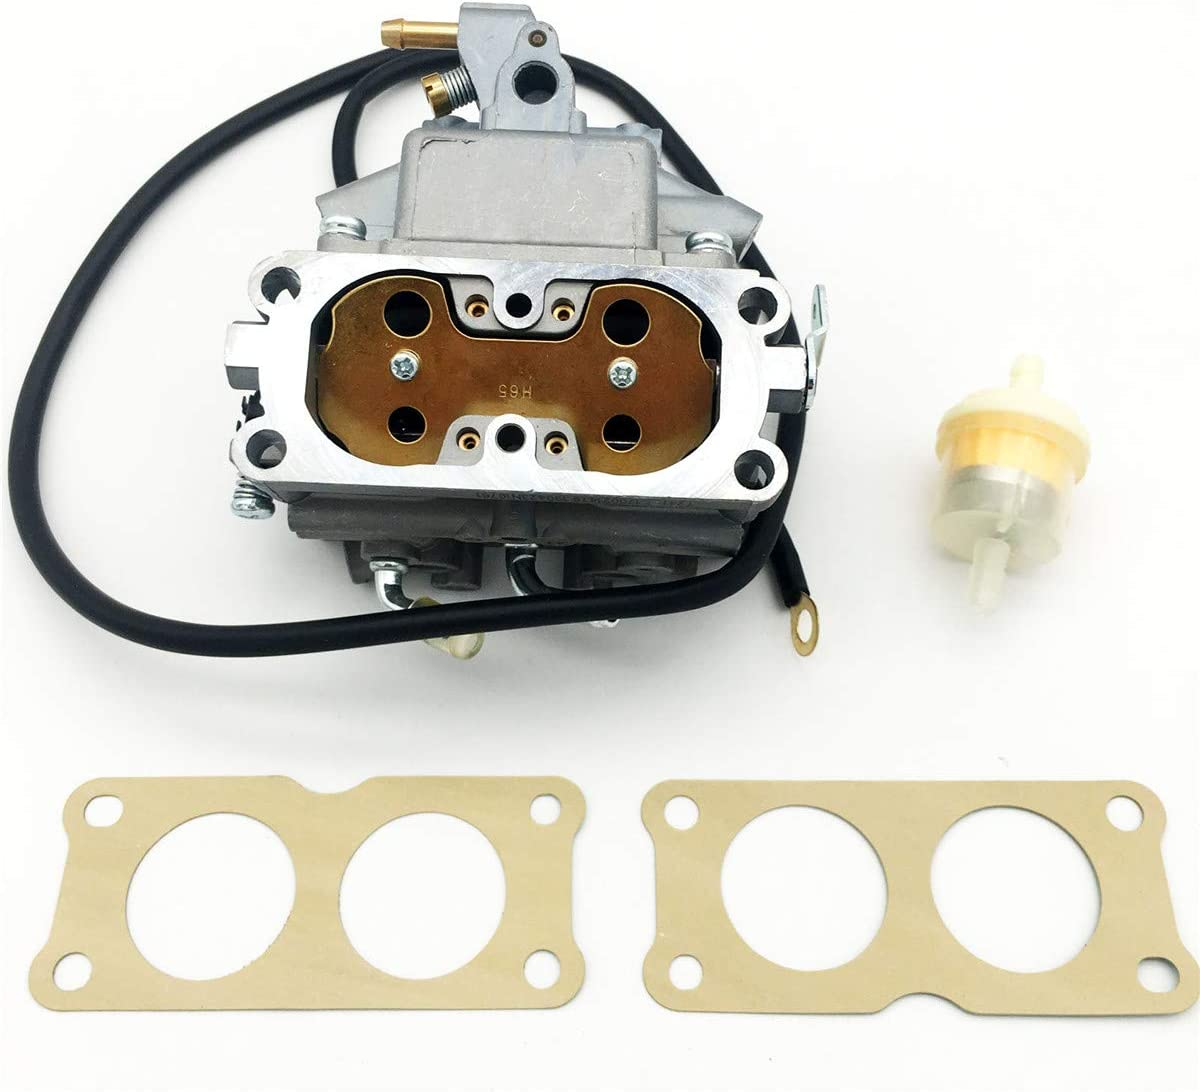 spartshome New Carburetor Replacement for Honda GX670 24 hp GX 670 V Twin 24hp 16100-ZN1-802 Engine Kit